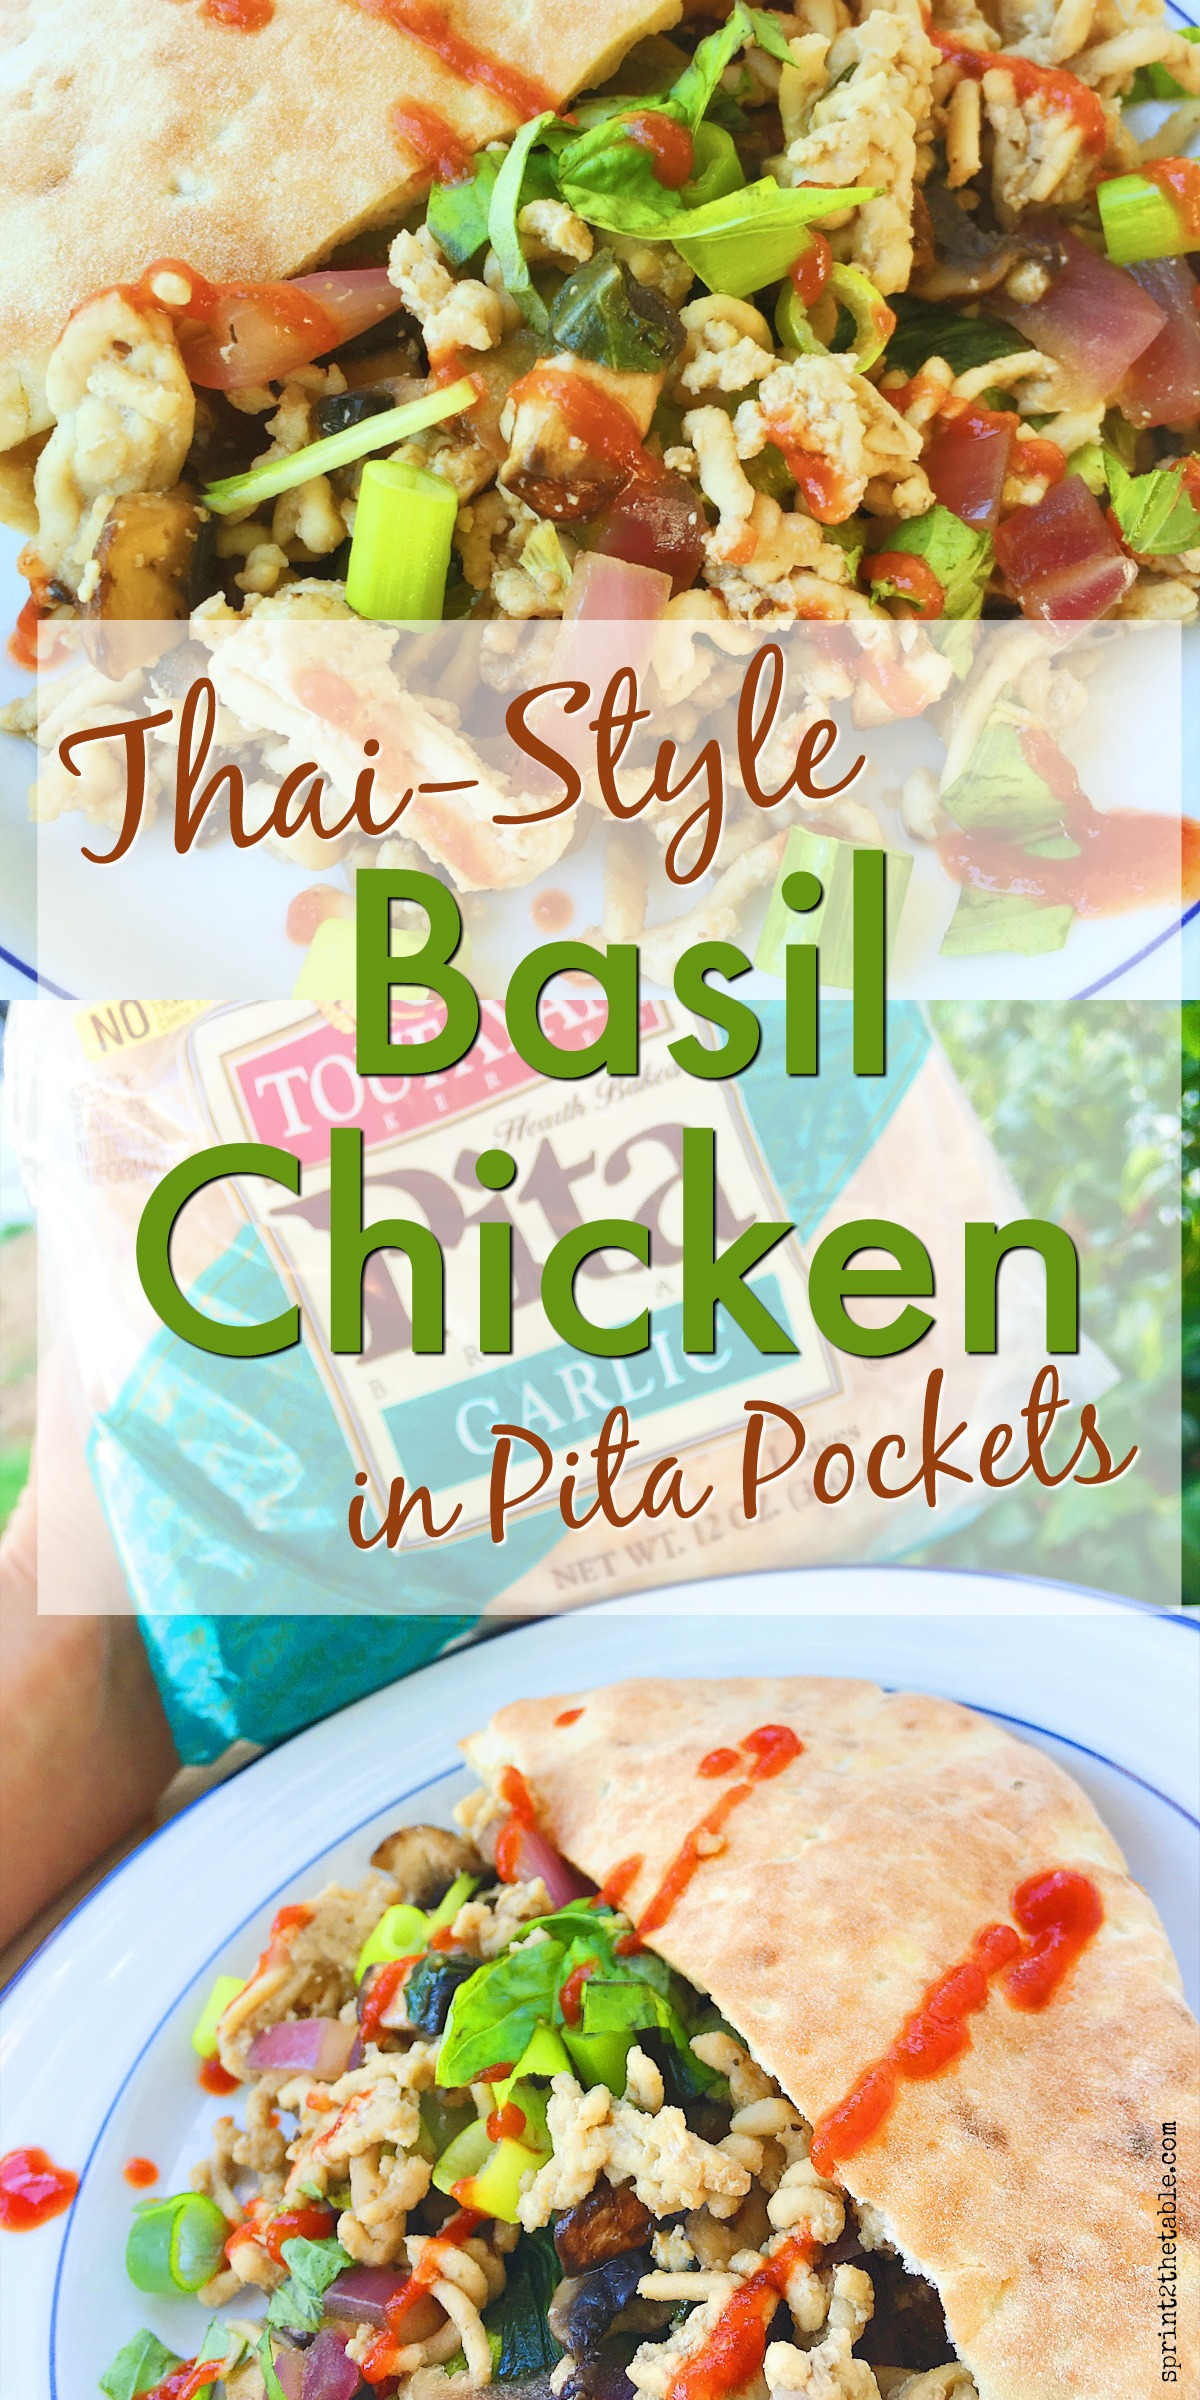 This crave-worthy Thai-Style Basil Chicken is made with lean ground meat, basil leaves, and veggies. It's a quick, heathy dinner that's full of flavor!